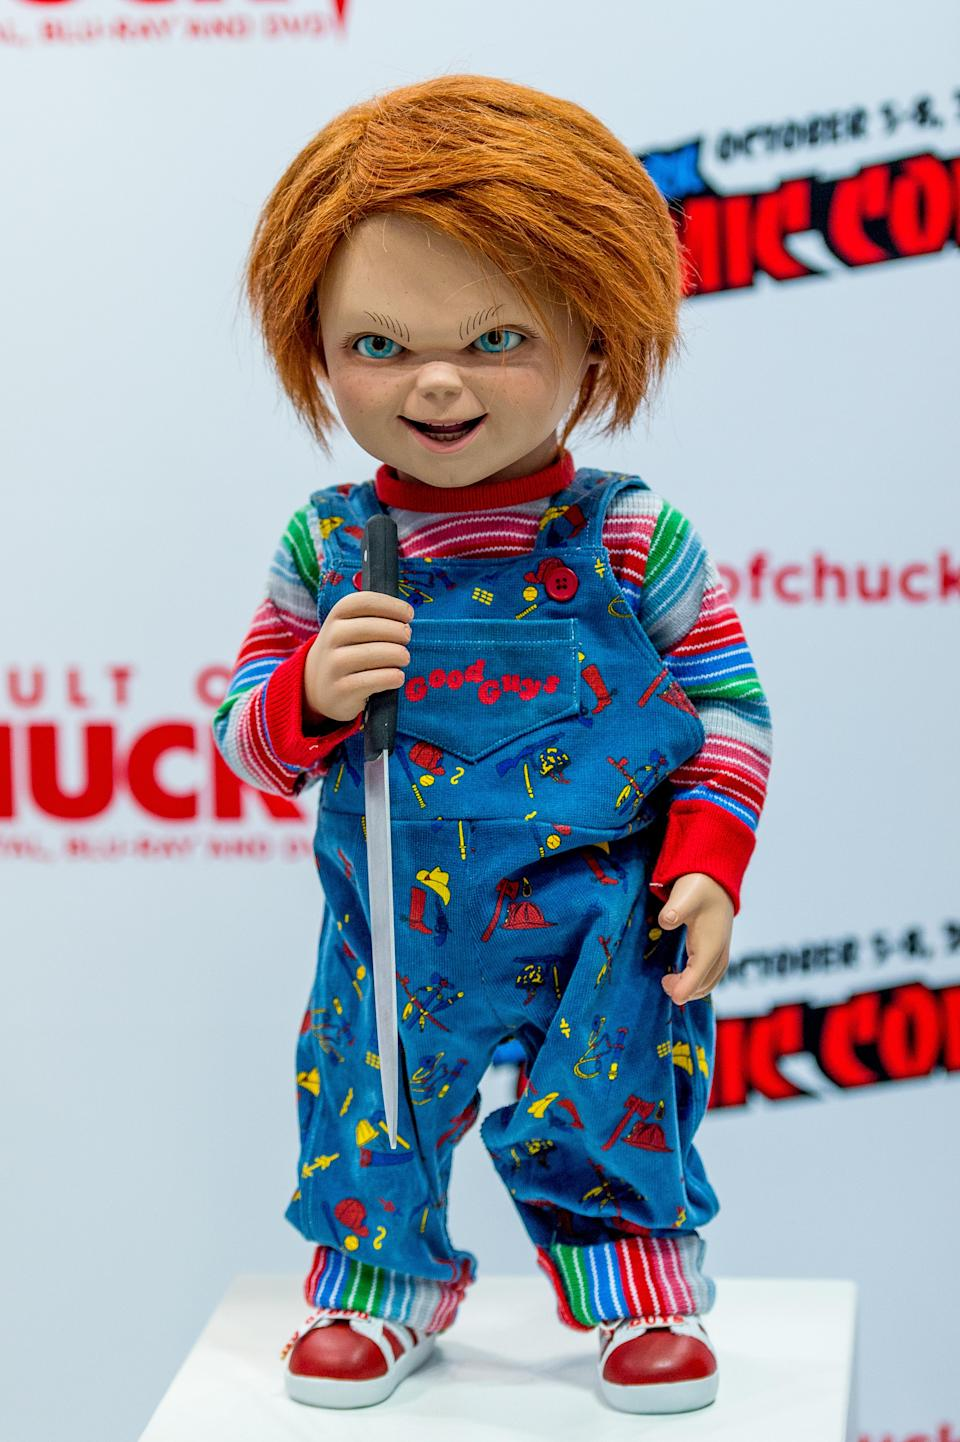 NEW YORK, NY – OCTOBER 05: Chucky from Child's Play merchandise on display during 2017 New York Comic Con – Day 1 on October 5, 2017 in New York City. (Photo by Roy Rochlin/Getty Images)